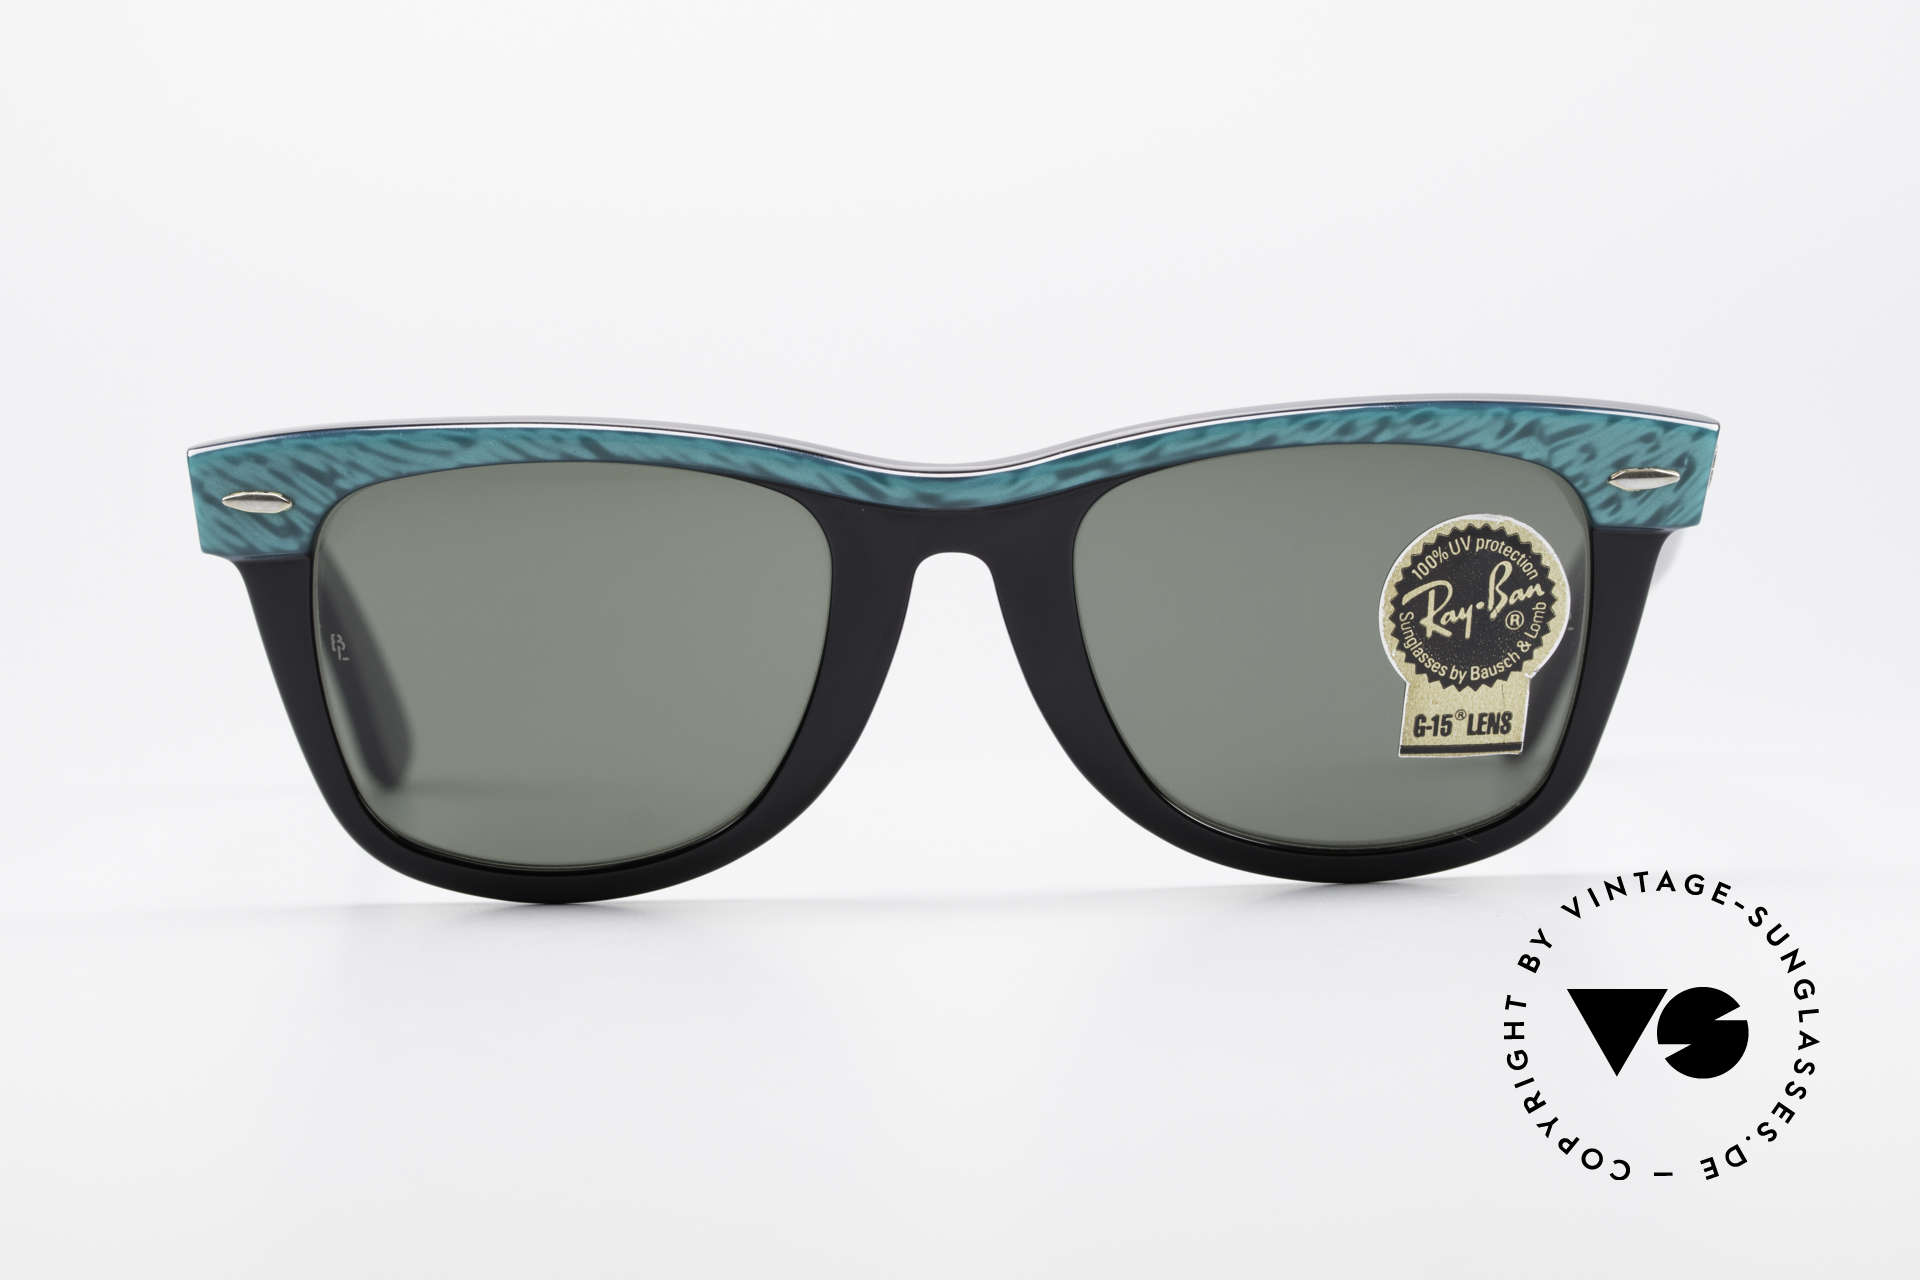 Ray Ban Wayfarer I Old 80's USA Sunglasses B&L, worn by many celebrities (e.g. Don Johnson, etc..), Made for Men and Women